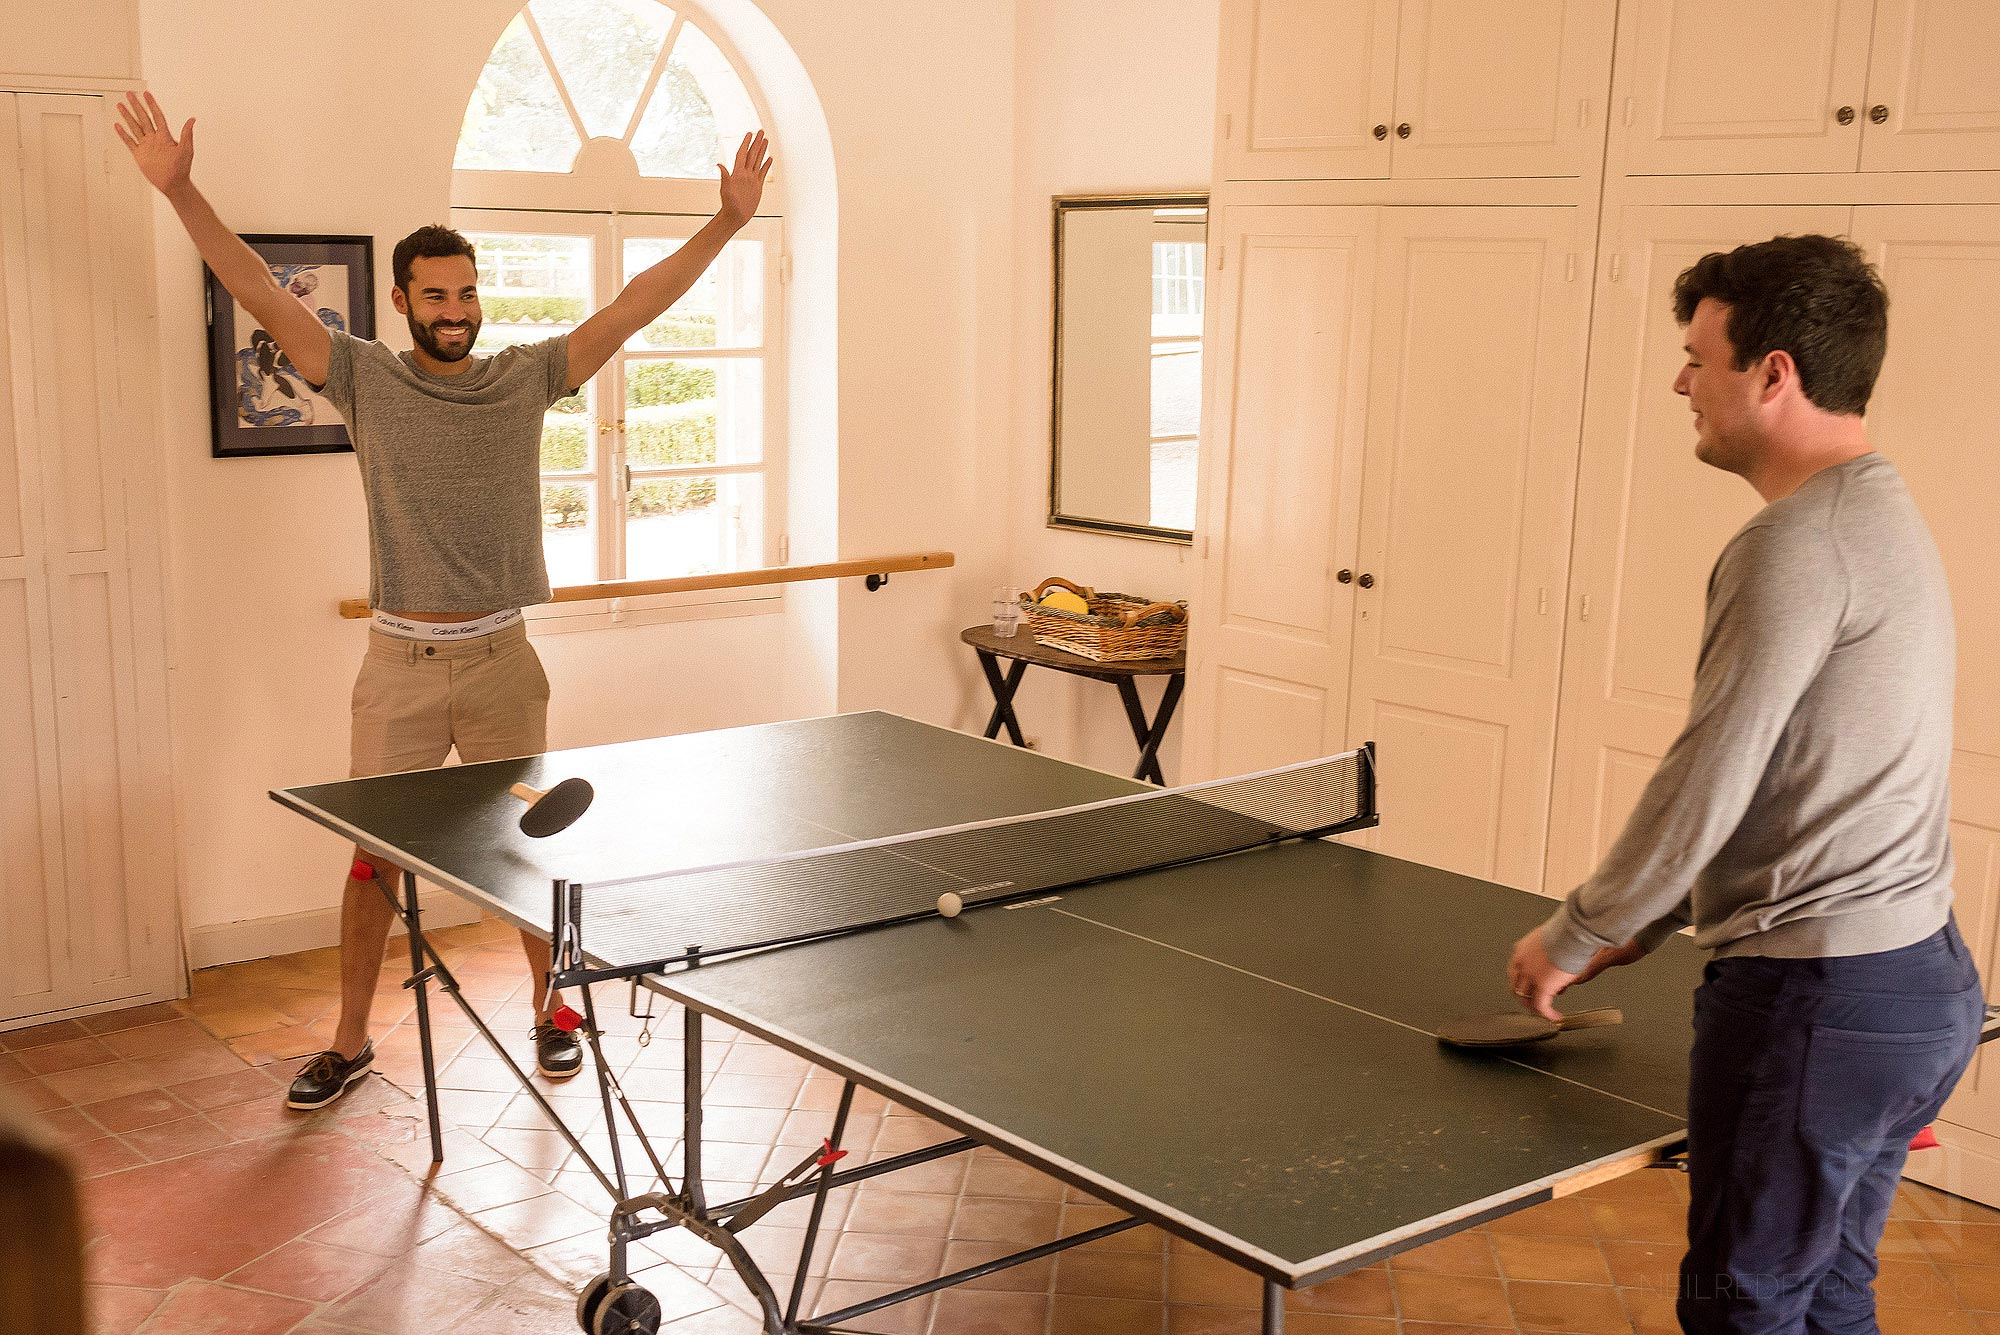 groom and best man playing table tennis